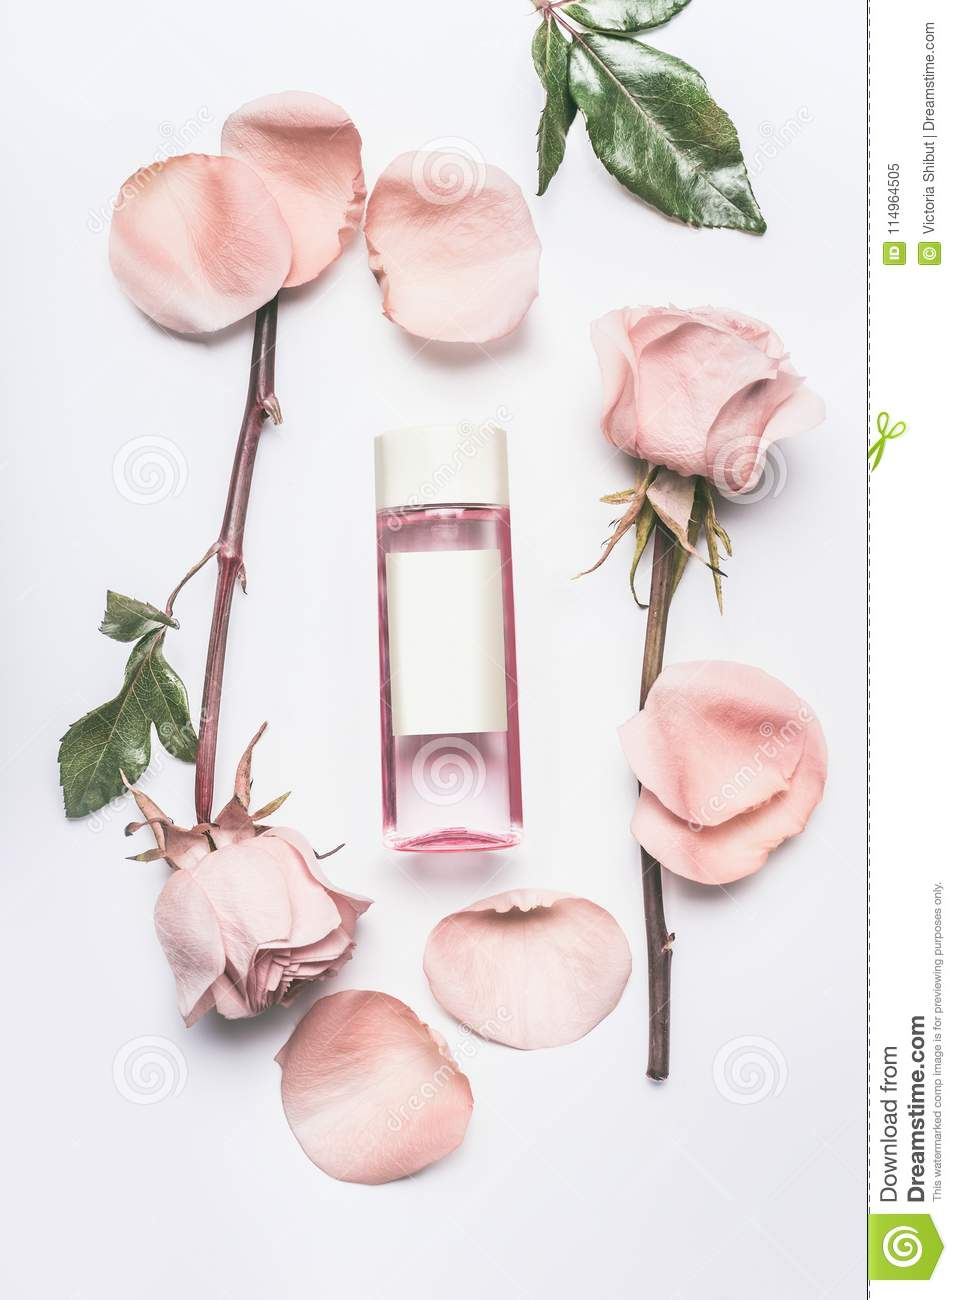 Pink cosmetic bottle with facial roses water or toner with essential oil , flowers and petals on white desk background, top view